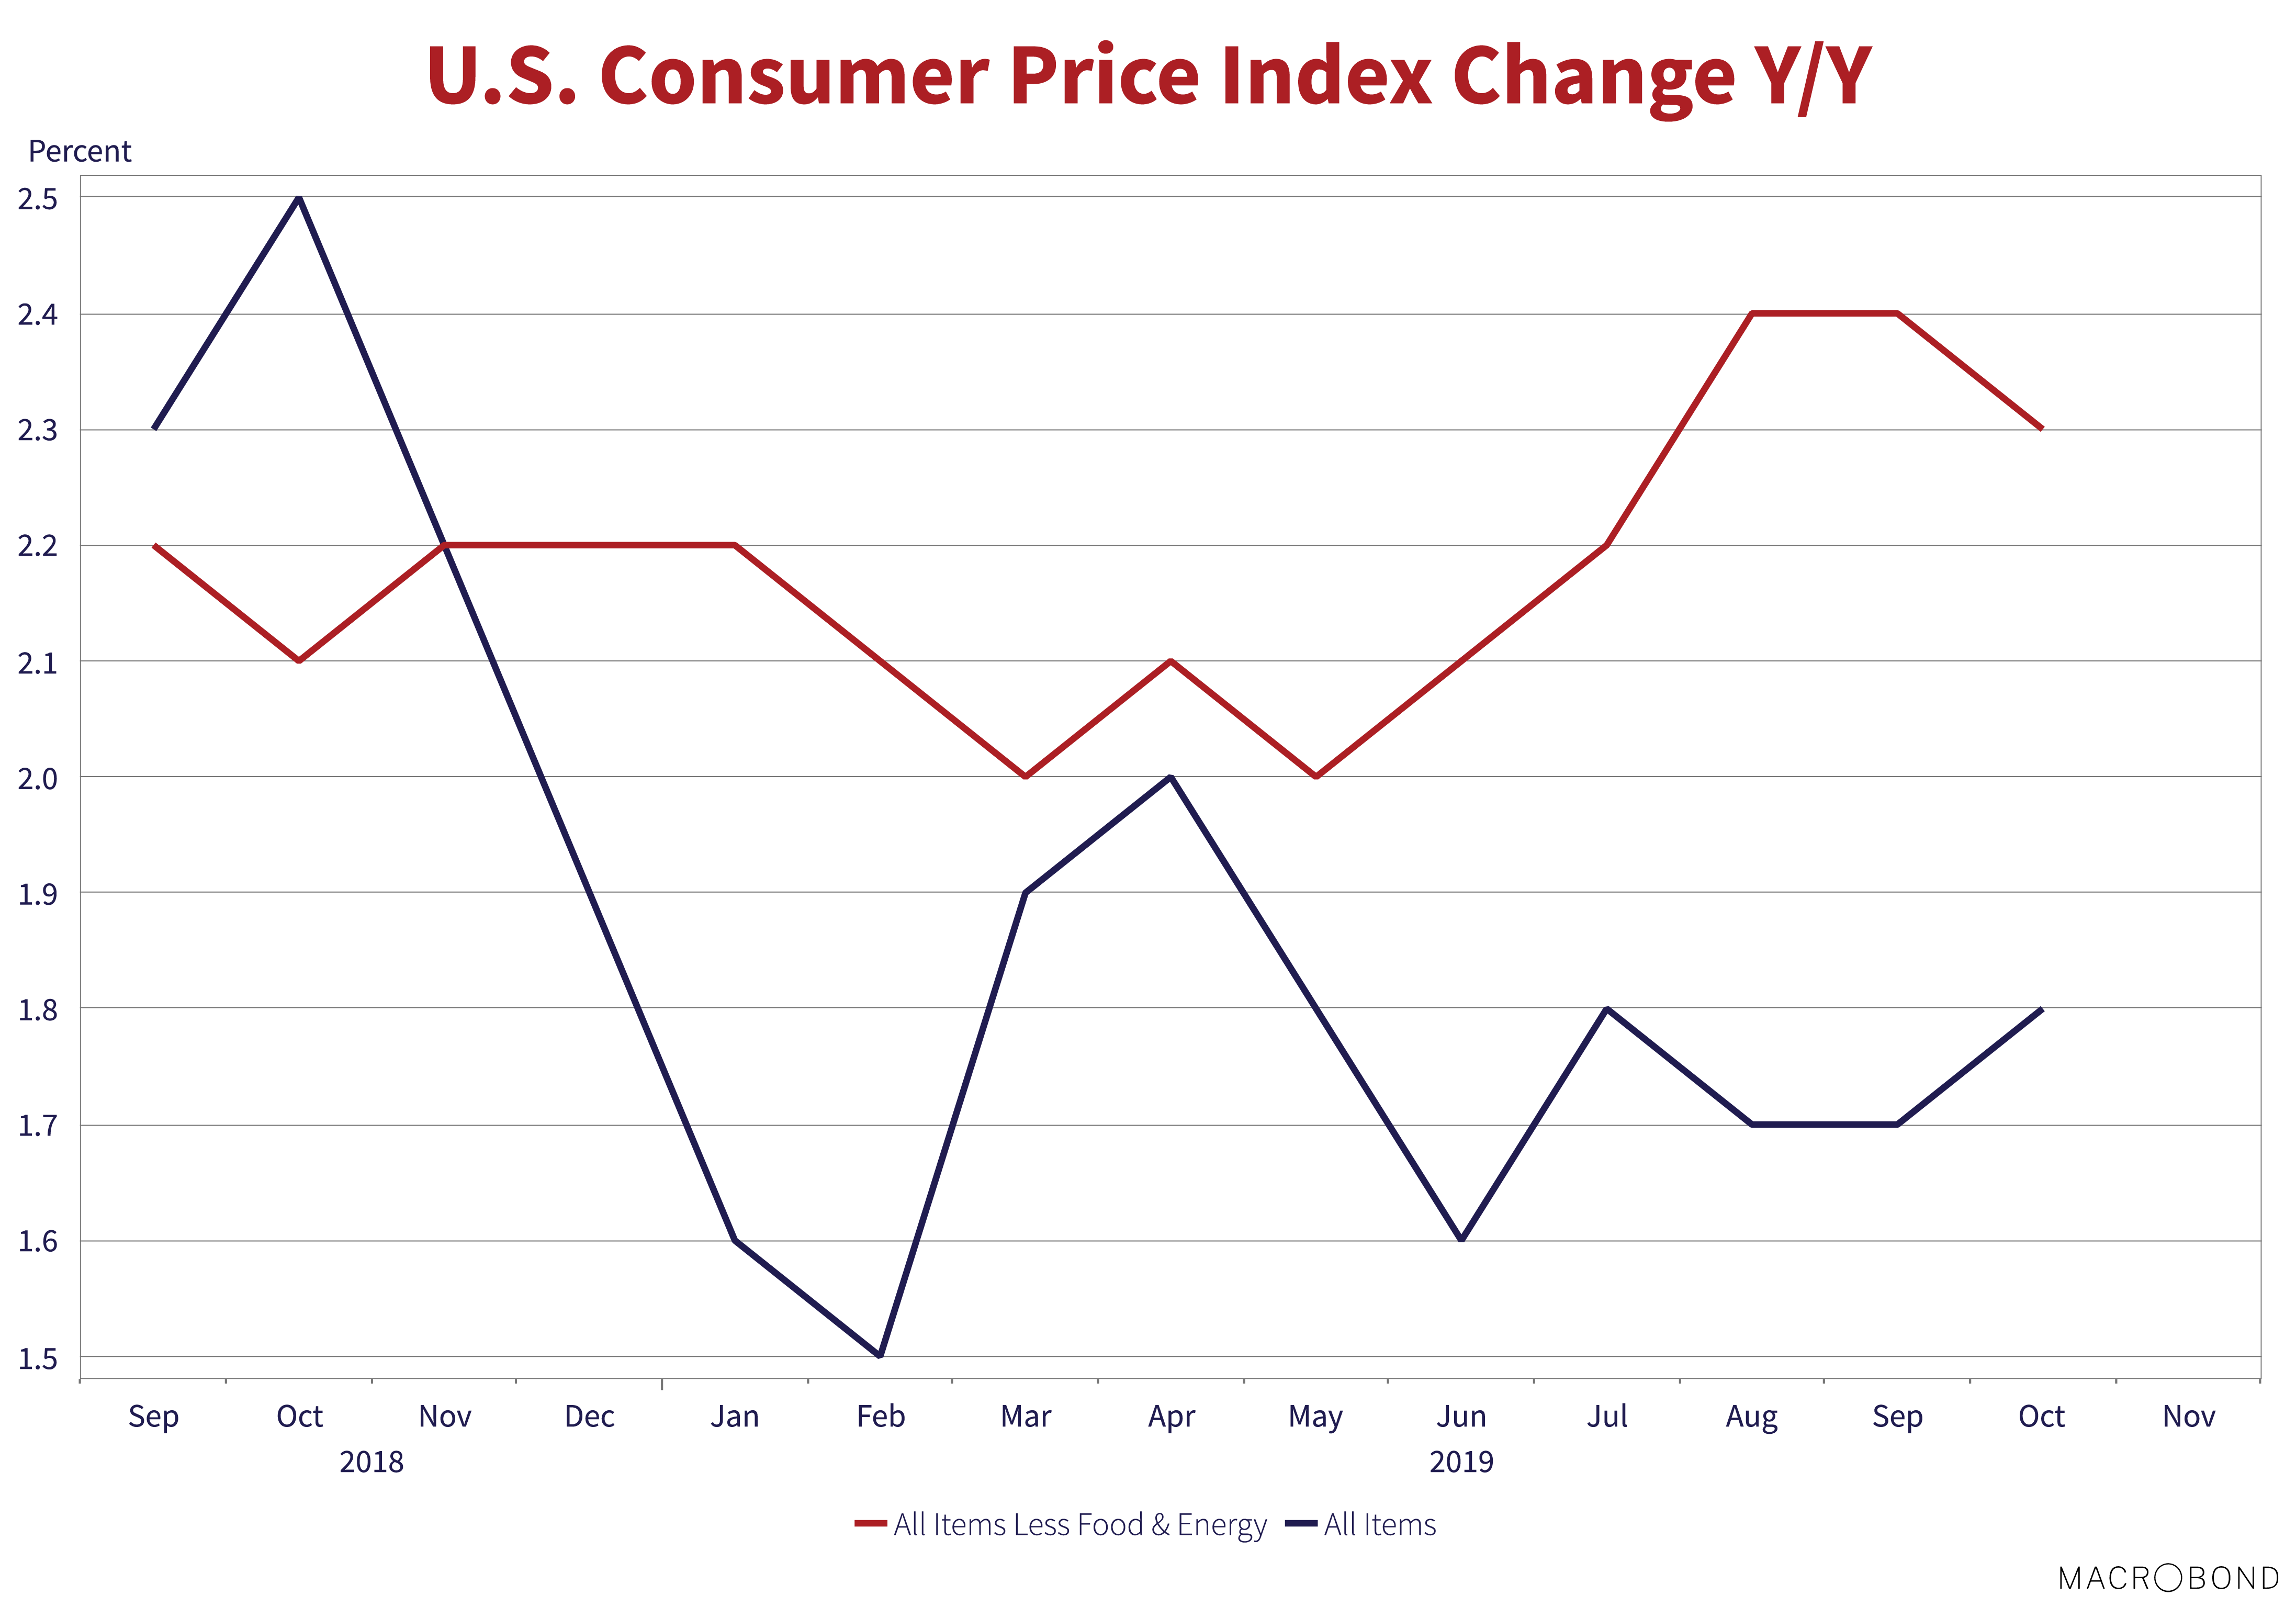 """U.S Consumer Price Index Change Y/Y. Source: Macrobond. Line graph shows values for Sep 2018 to Nov 2019. Graph shows """"All items Less food & Energy"""" and """"All items"""""""